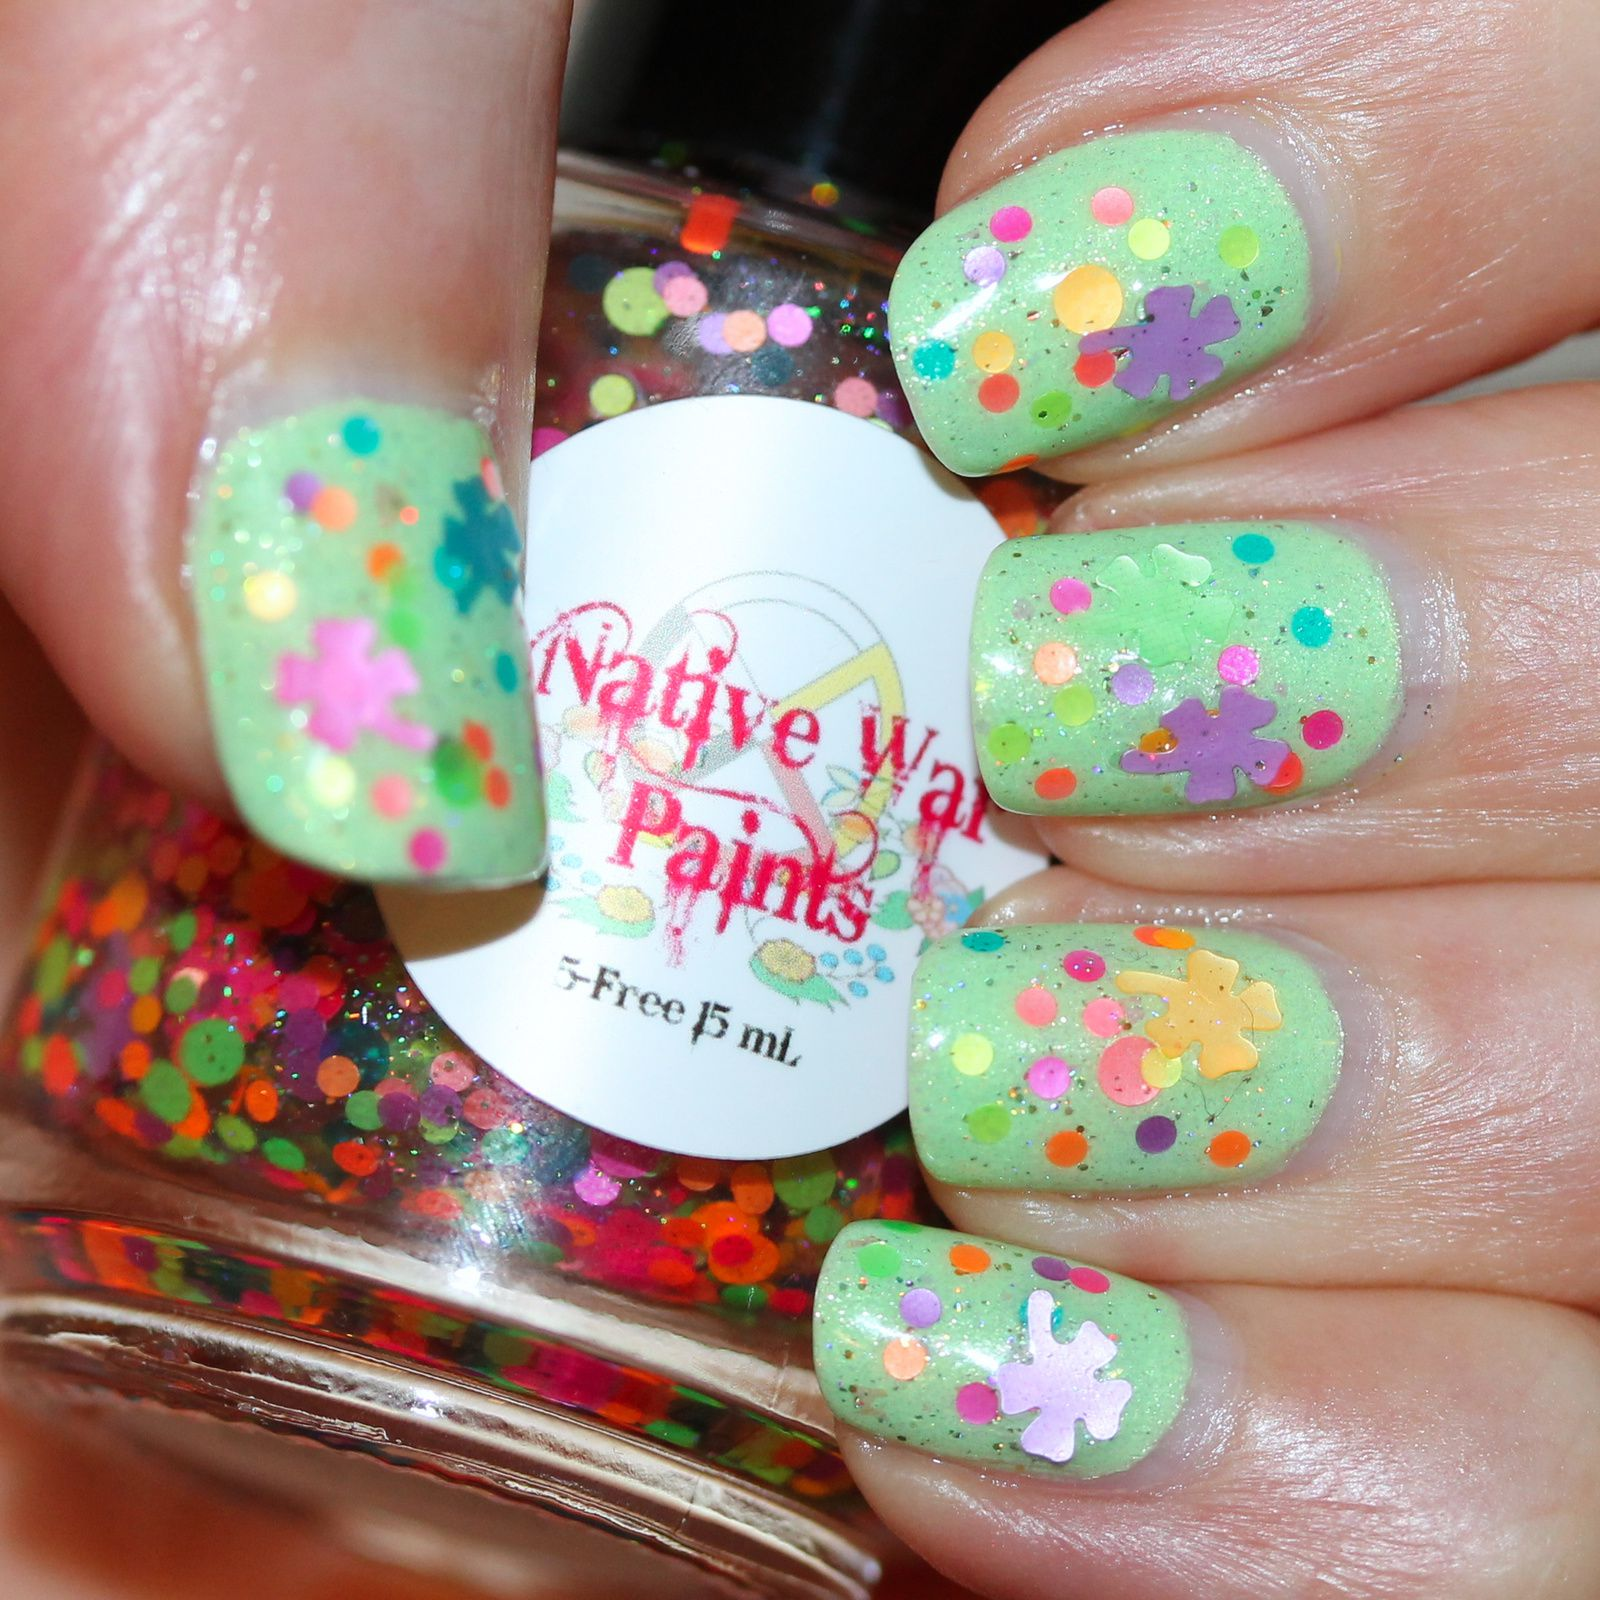 Duri Rejuvacote / Lilypad Lacquer Sub-lime! / Native War Paints Get Clover Yourself / HK Girl Top Coat